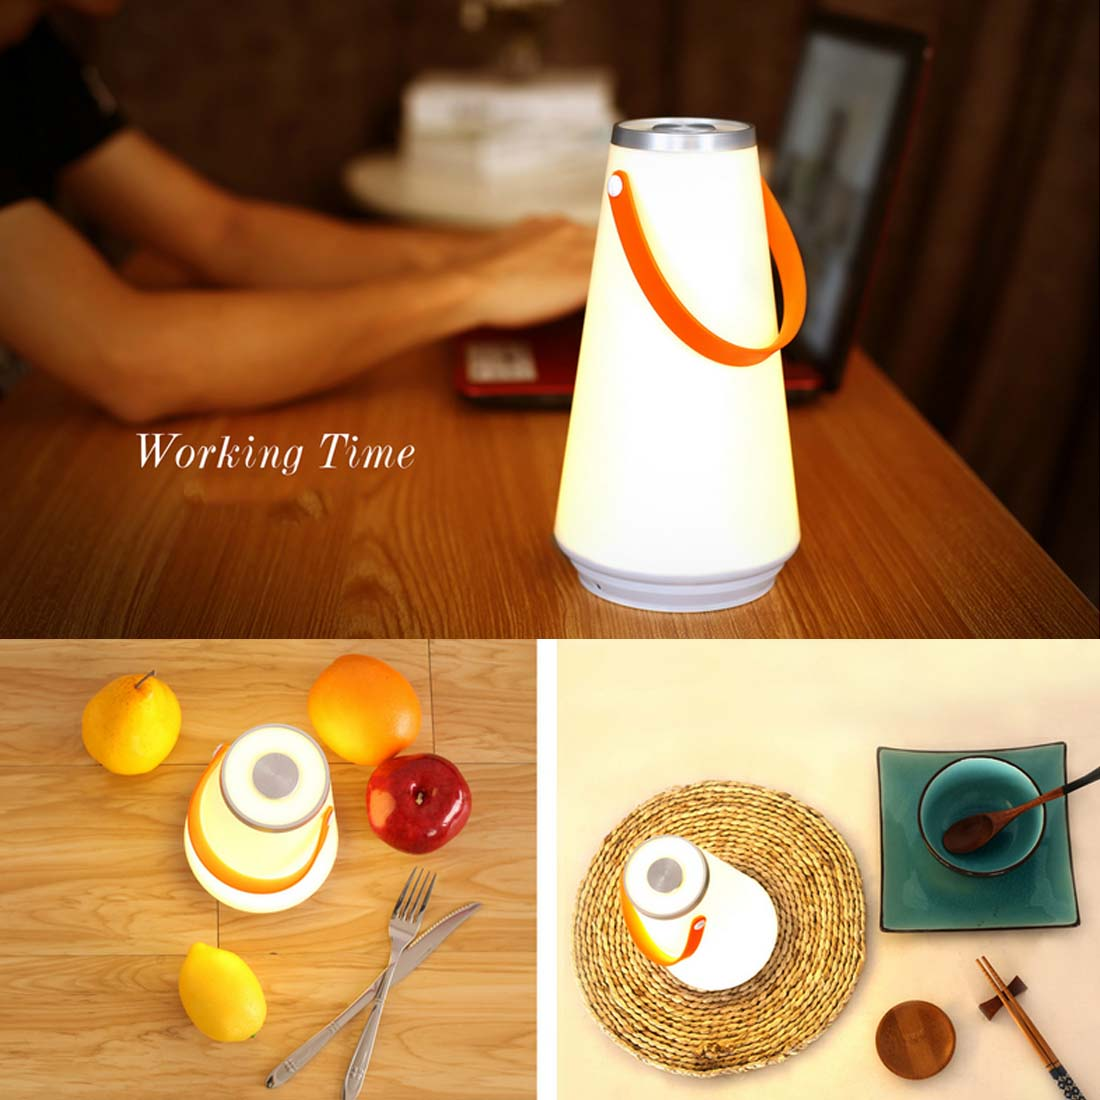 Creative Lovely Portable Wireless LED Home Night Light Table Lamp USB Rechargeable Touch Switch Outdoor Camping Emergency LightCreative Lovely Portable Wireless LED Home Night Light Table Lamp USB Rechargeable Touch Switch Outdoor Camping Emergency Light